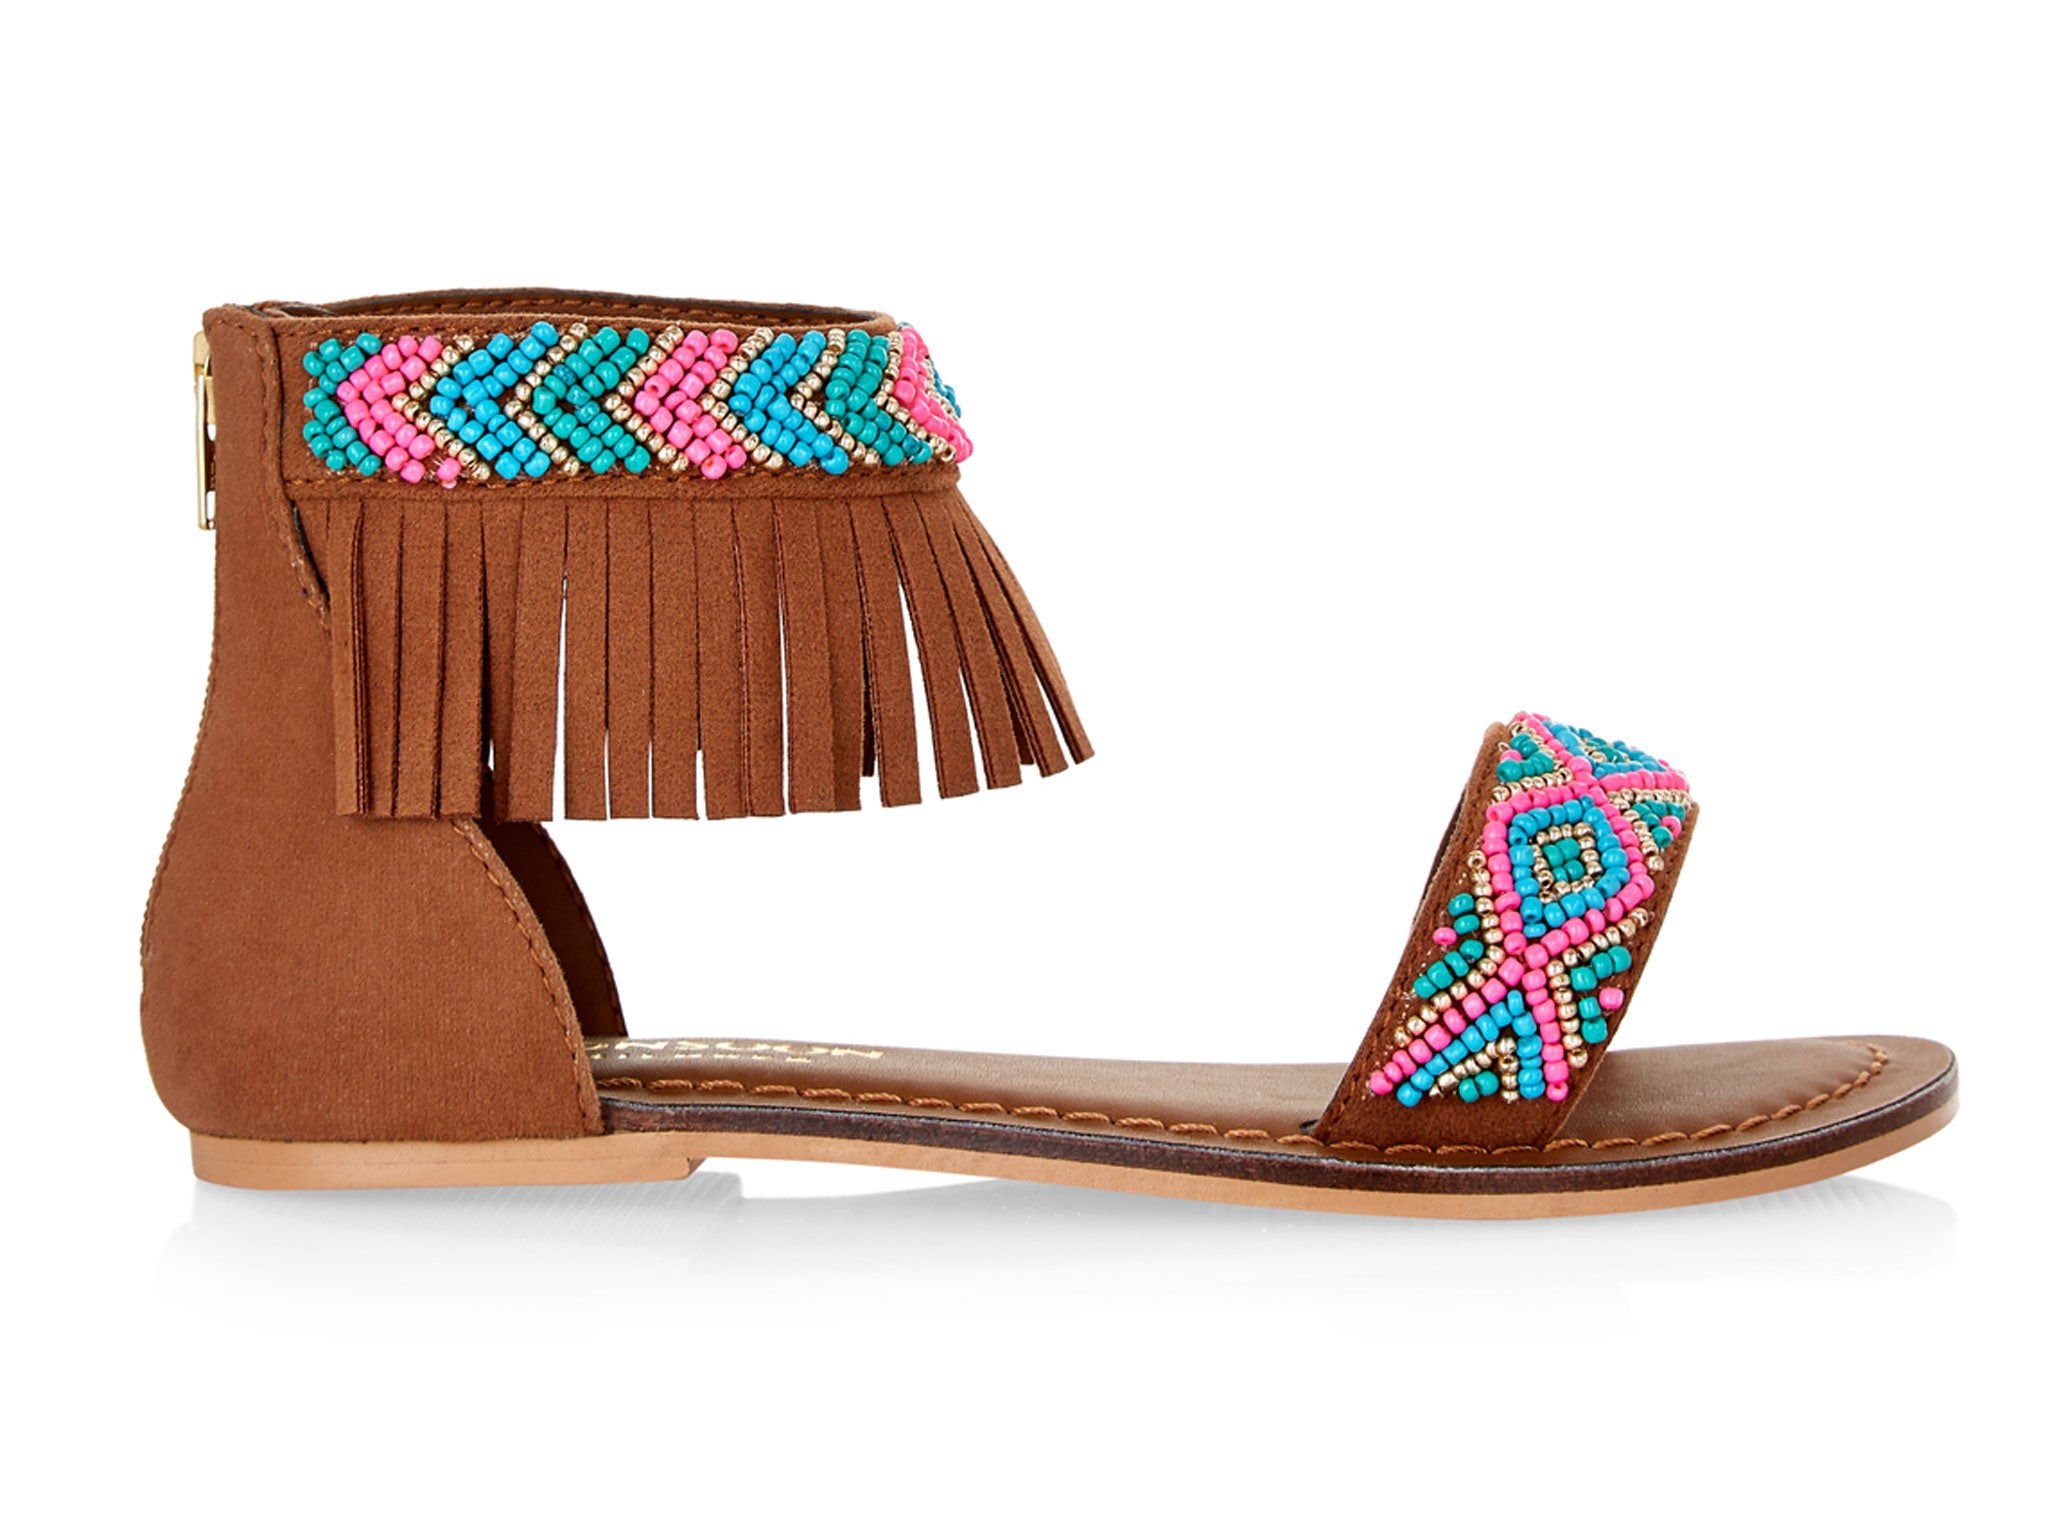 c1420531421a Tassels are all the rage this summer